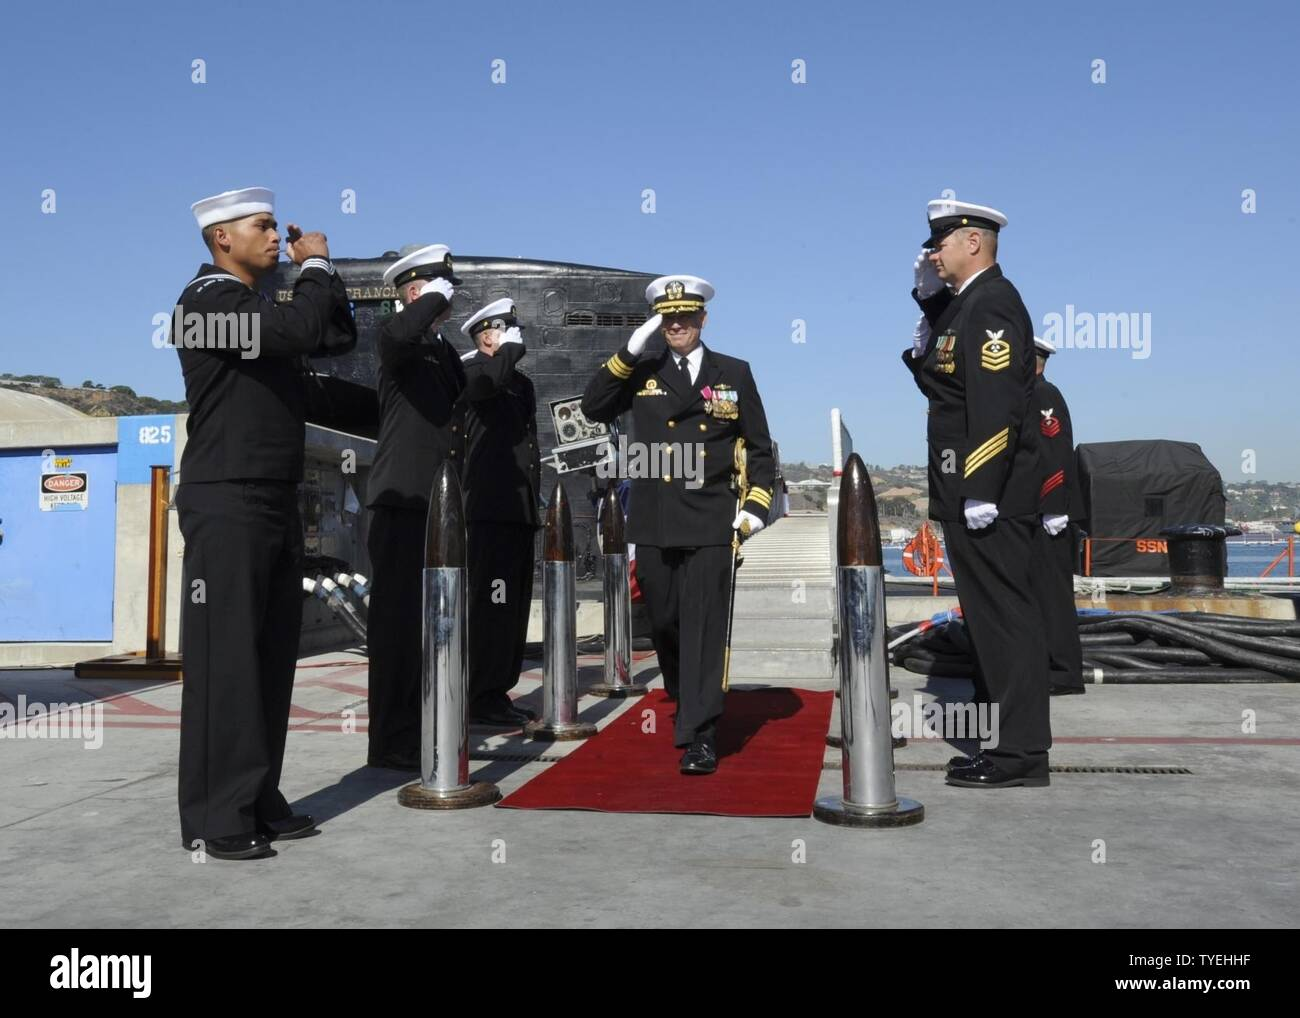 DIEGO (Nov. 4, 2016) Cmdr. Jeff Juergens, commanding officer of the Los Angeles-class fast attack submarine USS San Francisco (SSN 711) passes through sideboys during a change of command and farewell ceremony on Naval Base Point Loma. The San Francisco is scheduled to shift homeports to Norfolk, Va. to begin a two year conversion process to become a moored training ship at the Nuclear Power Training Unit in Charleston, S.C. - Stock Image